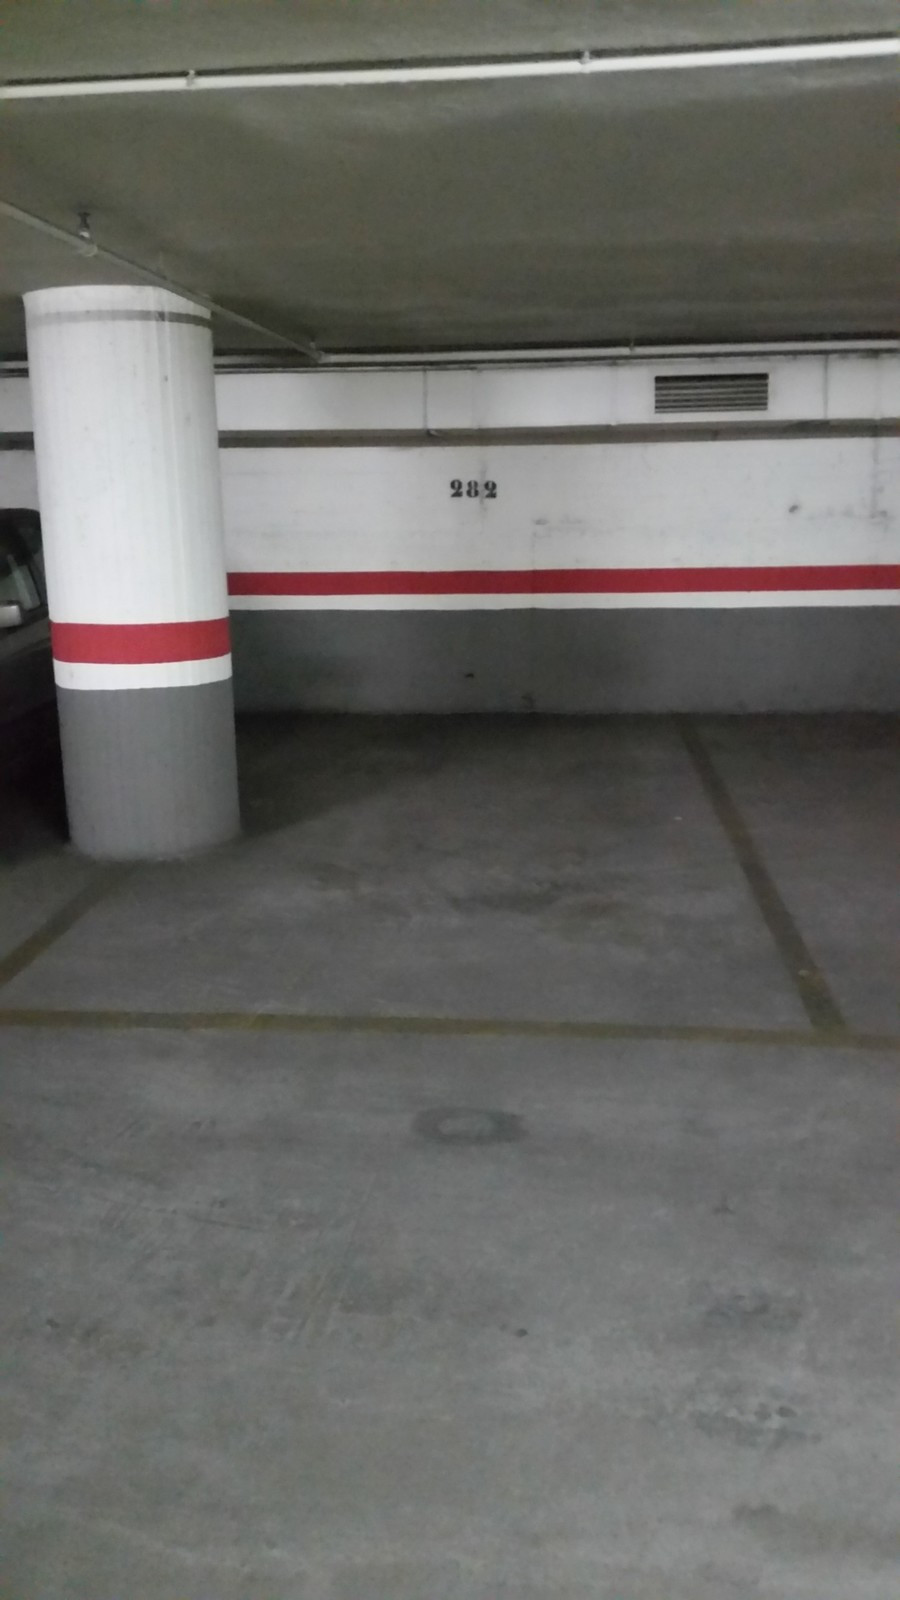 FULL DOMAIN PROPERTY For sale an underground parking place in a very central building, a few steps f, Spain